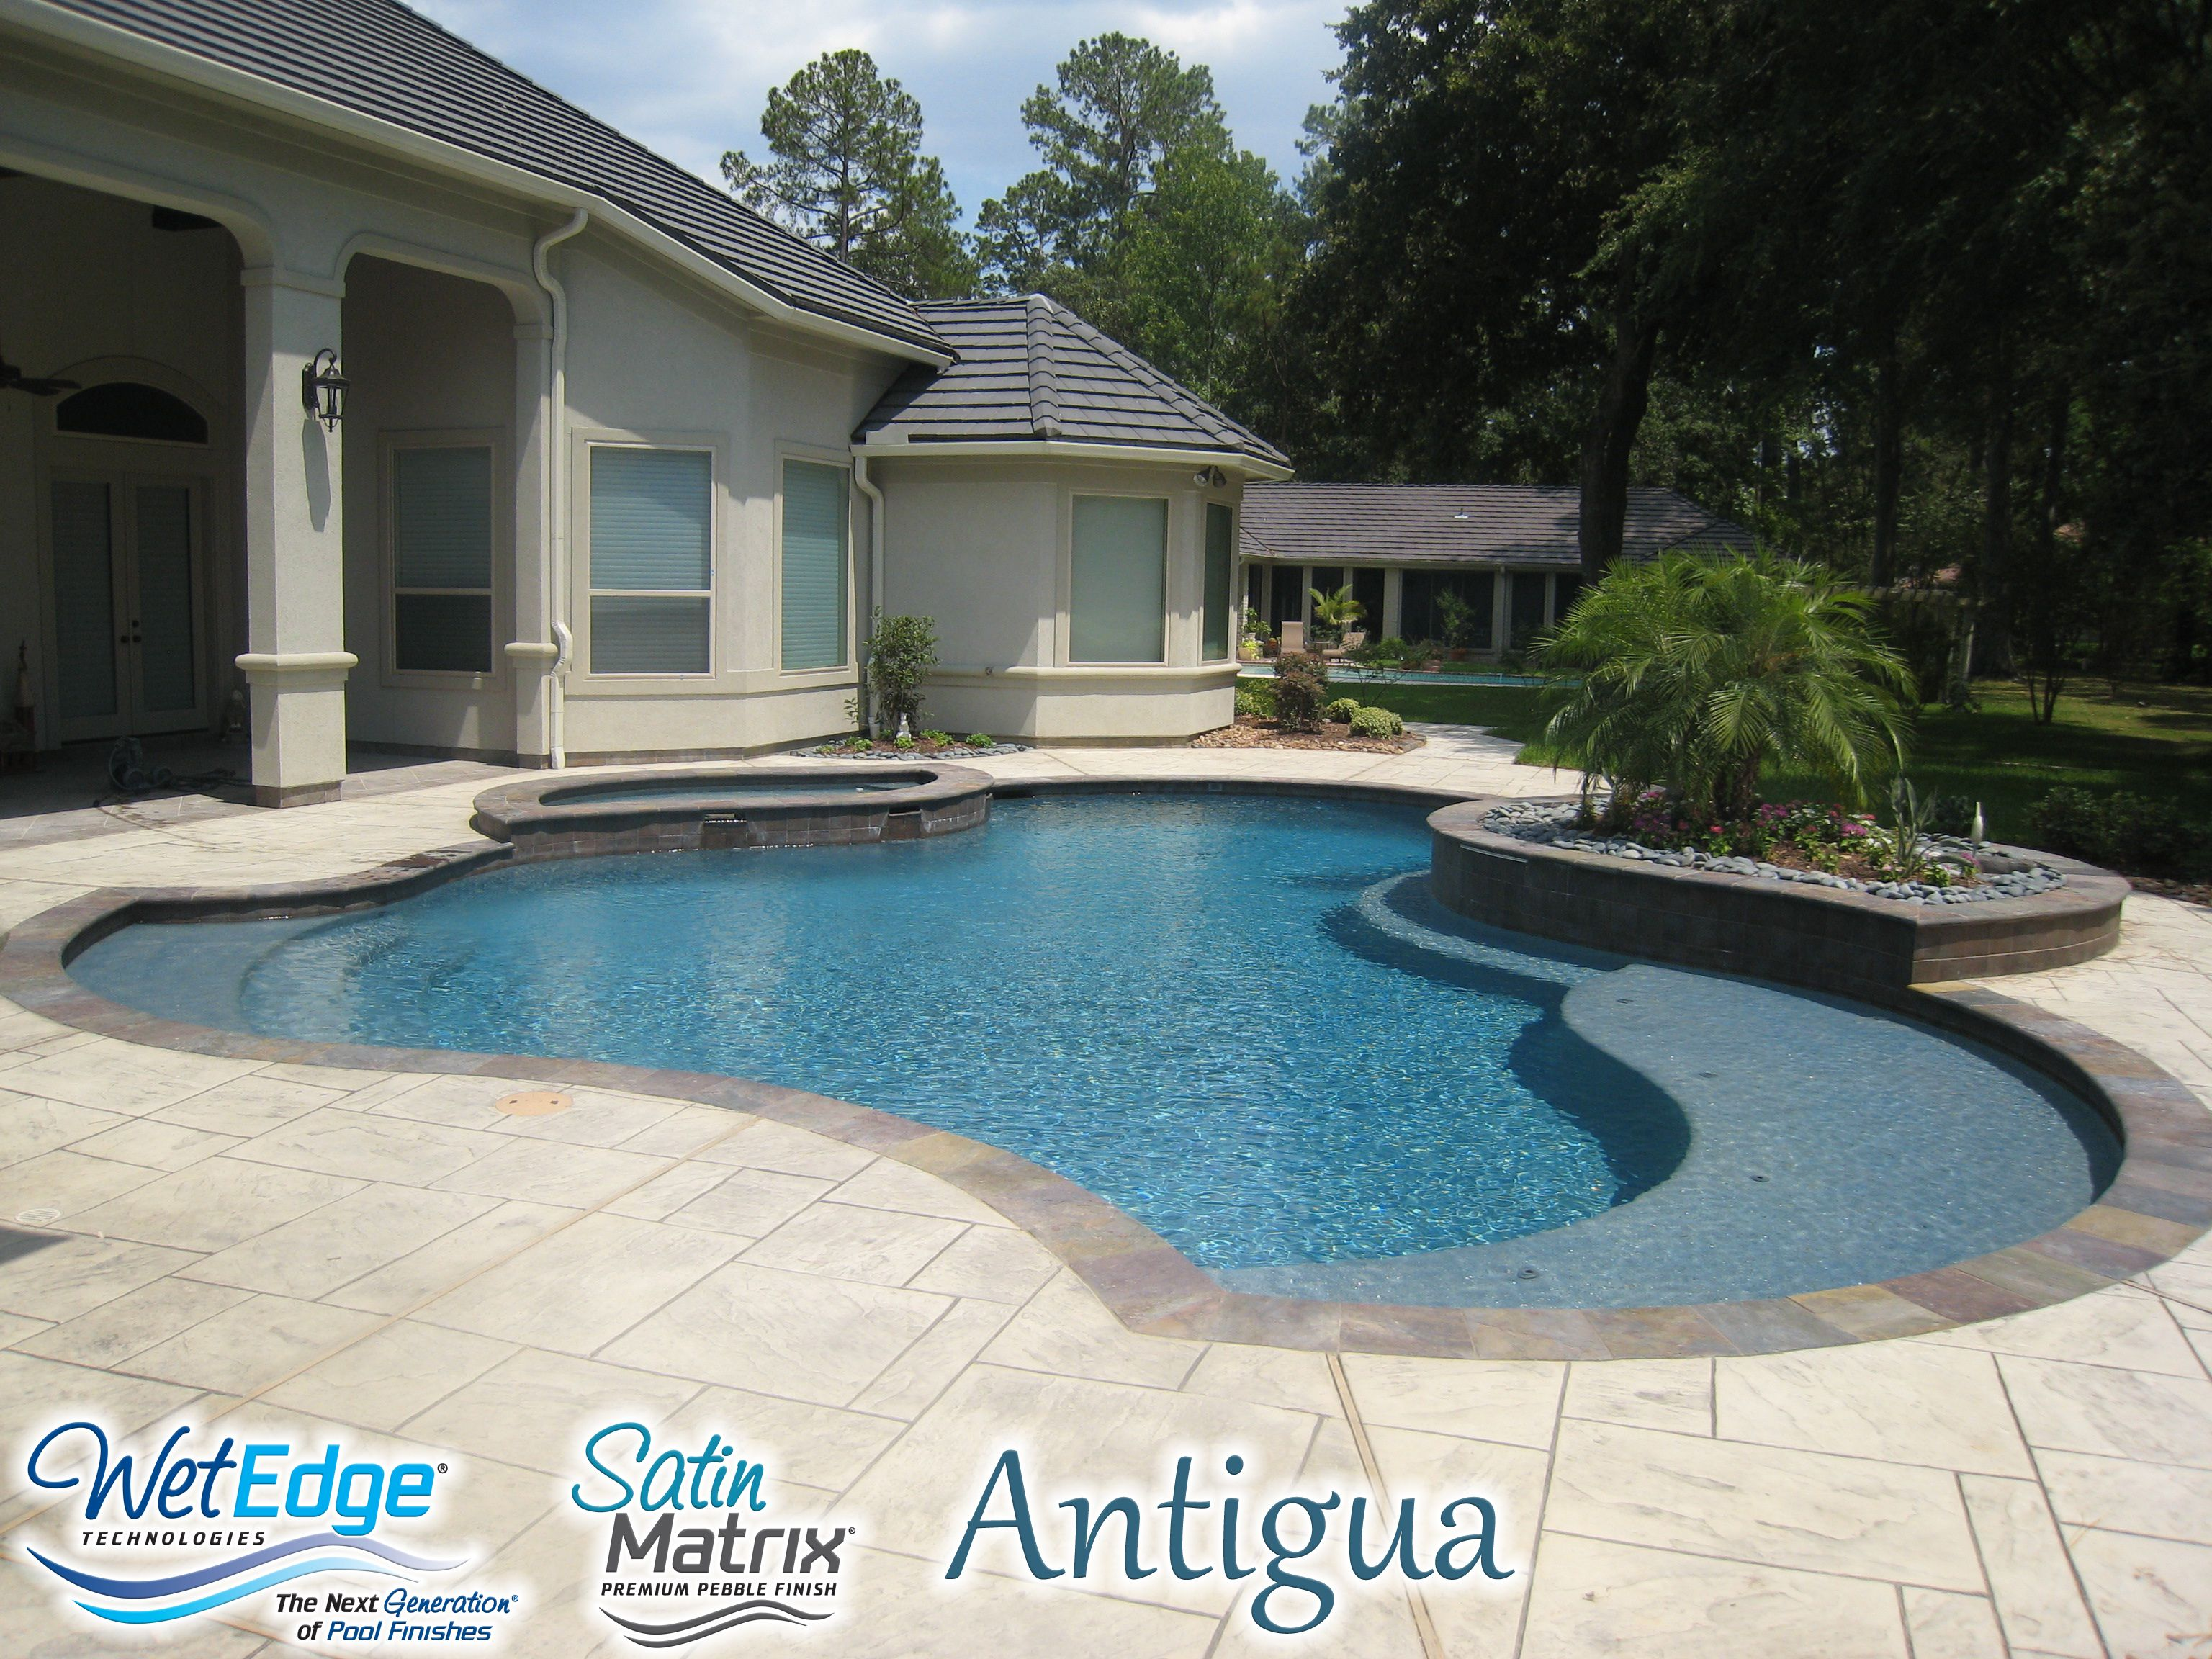 Satin Matrix Antigua is one of our favorite colors This deep blue